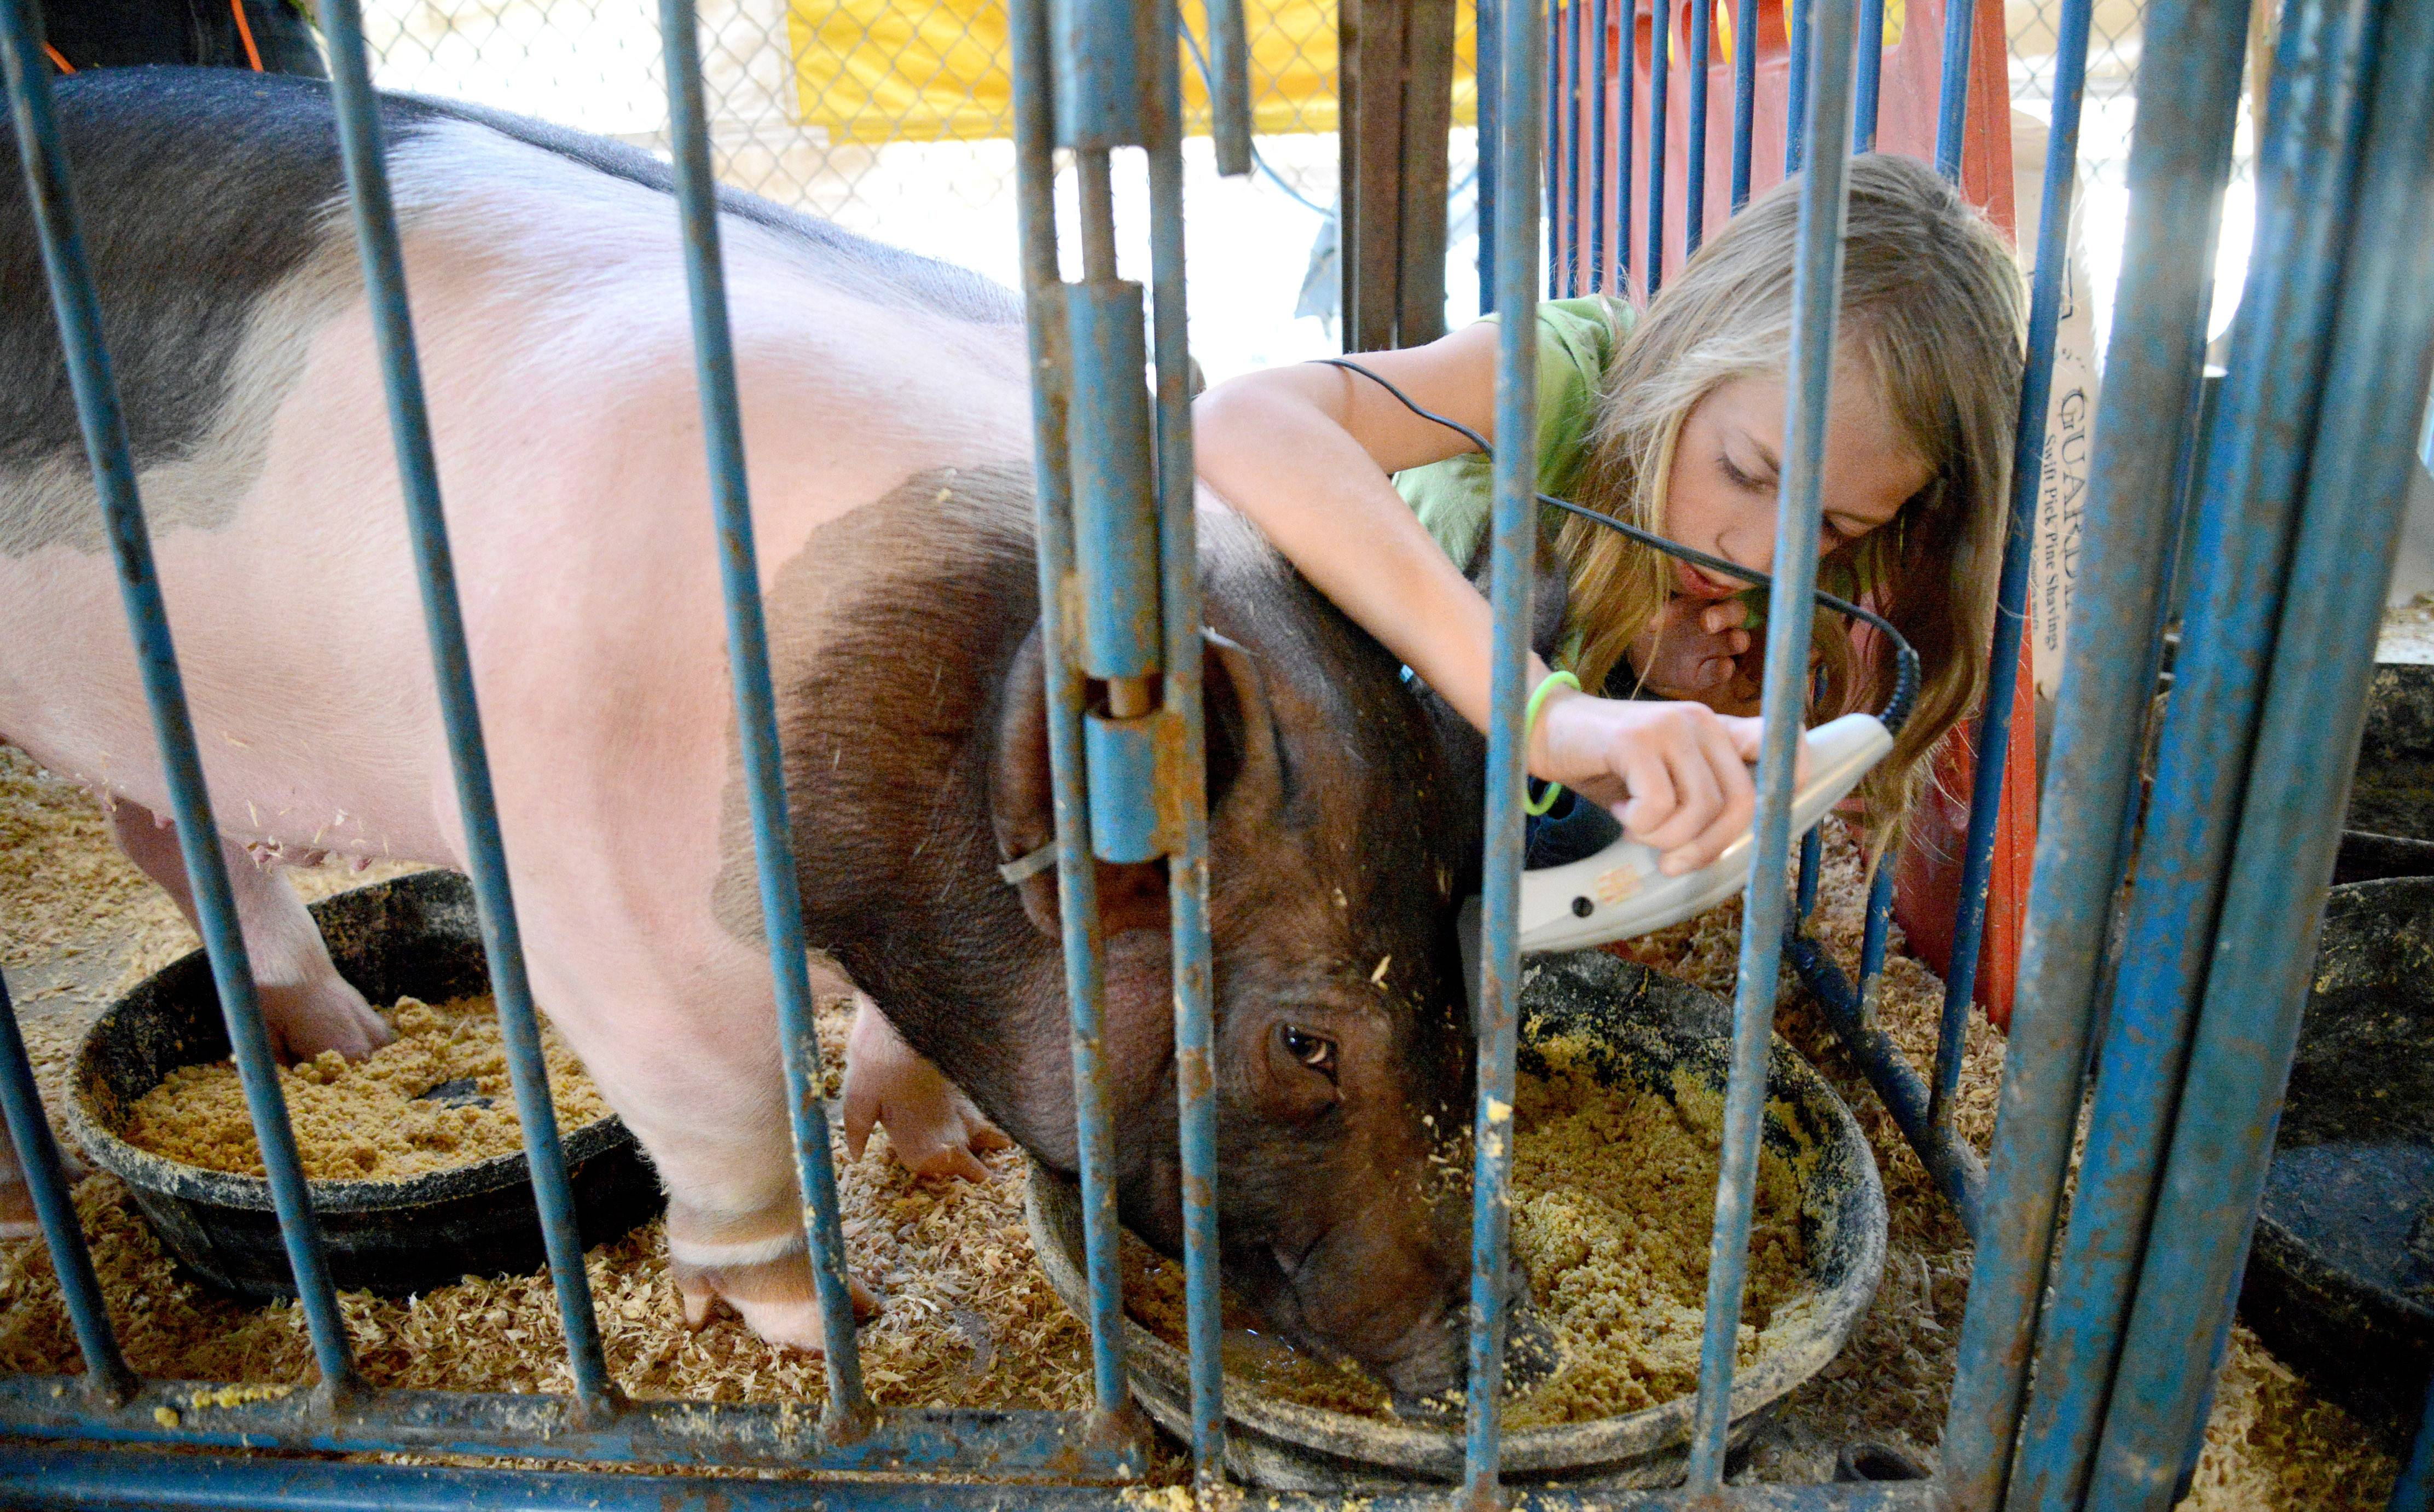 Emily Lesko, 10, of Glendale Heights trims the hair on the forehead of her pig named Teenie to prepare for showing him at the Kane County Fair Thursday in St. Charles. This is her third year showing with the Whirlybirds 4-H Club.